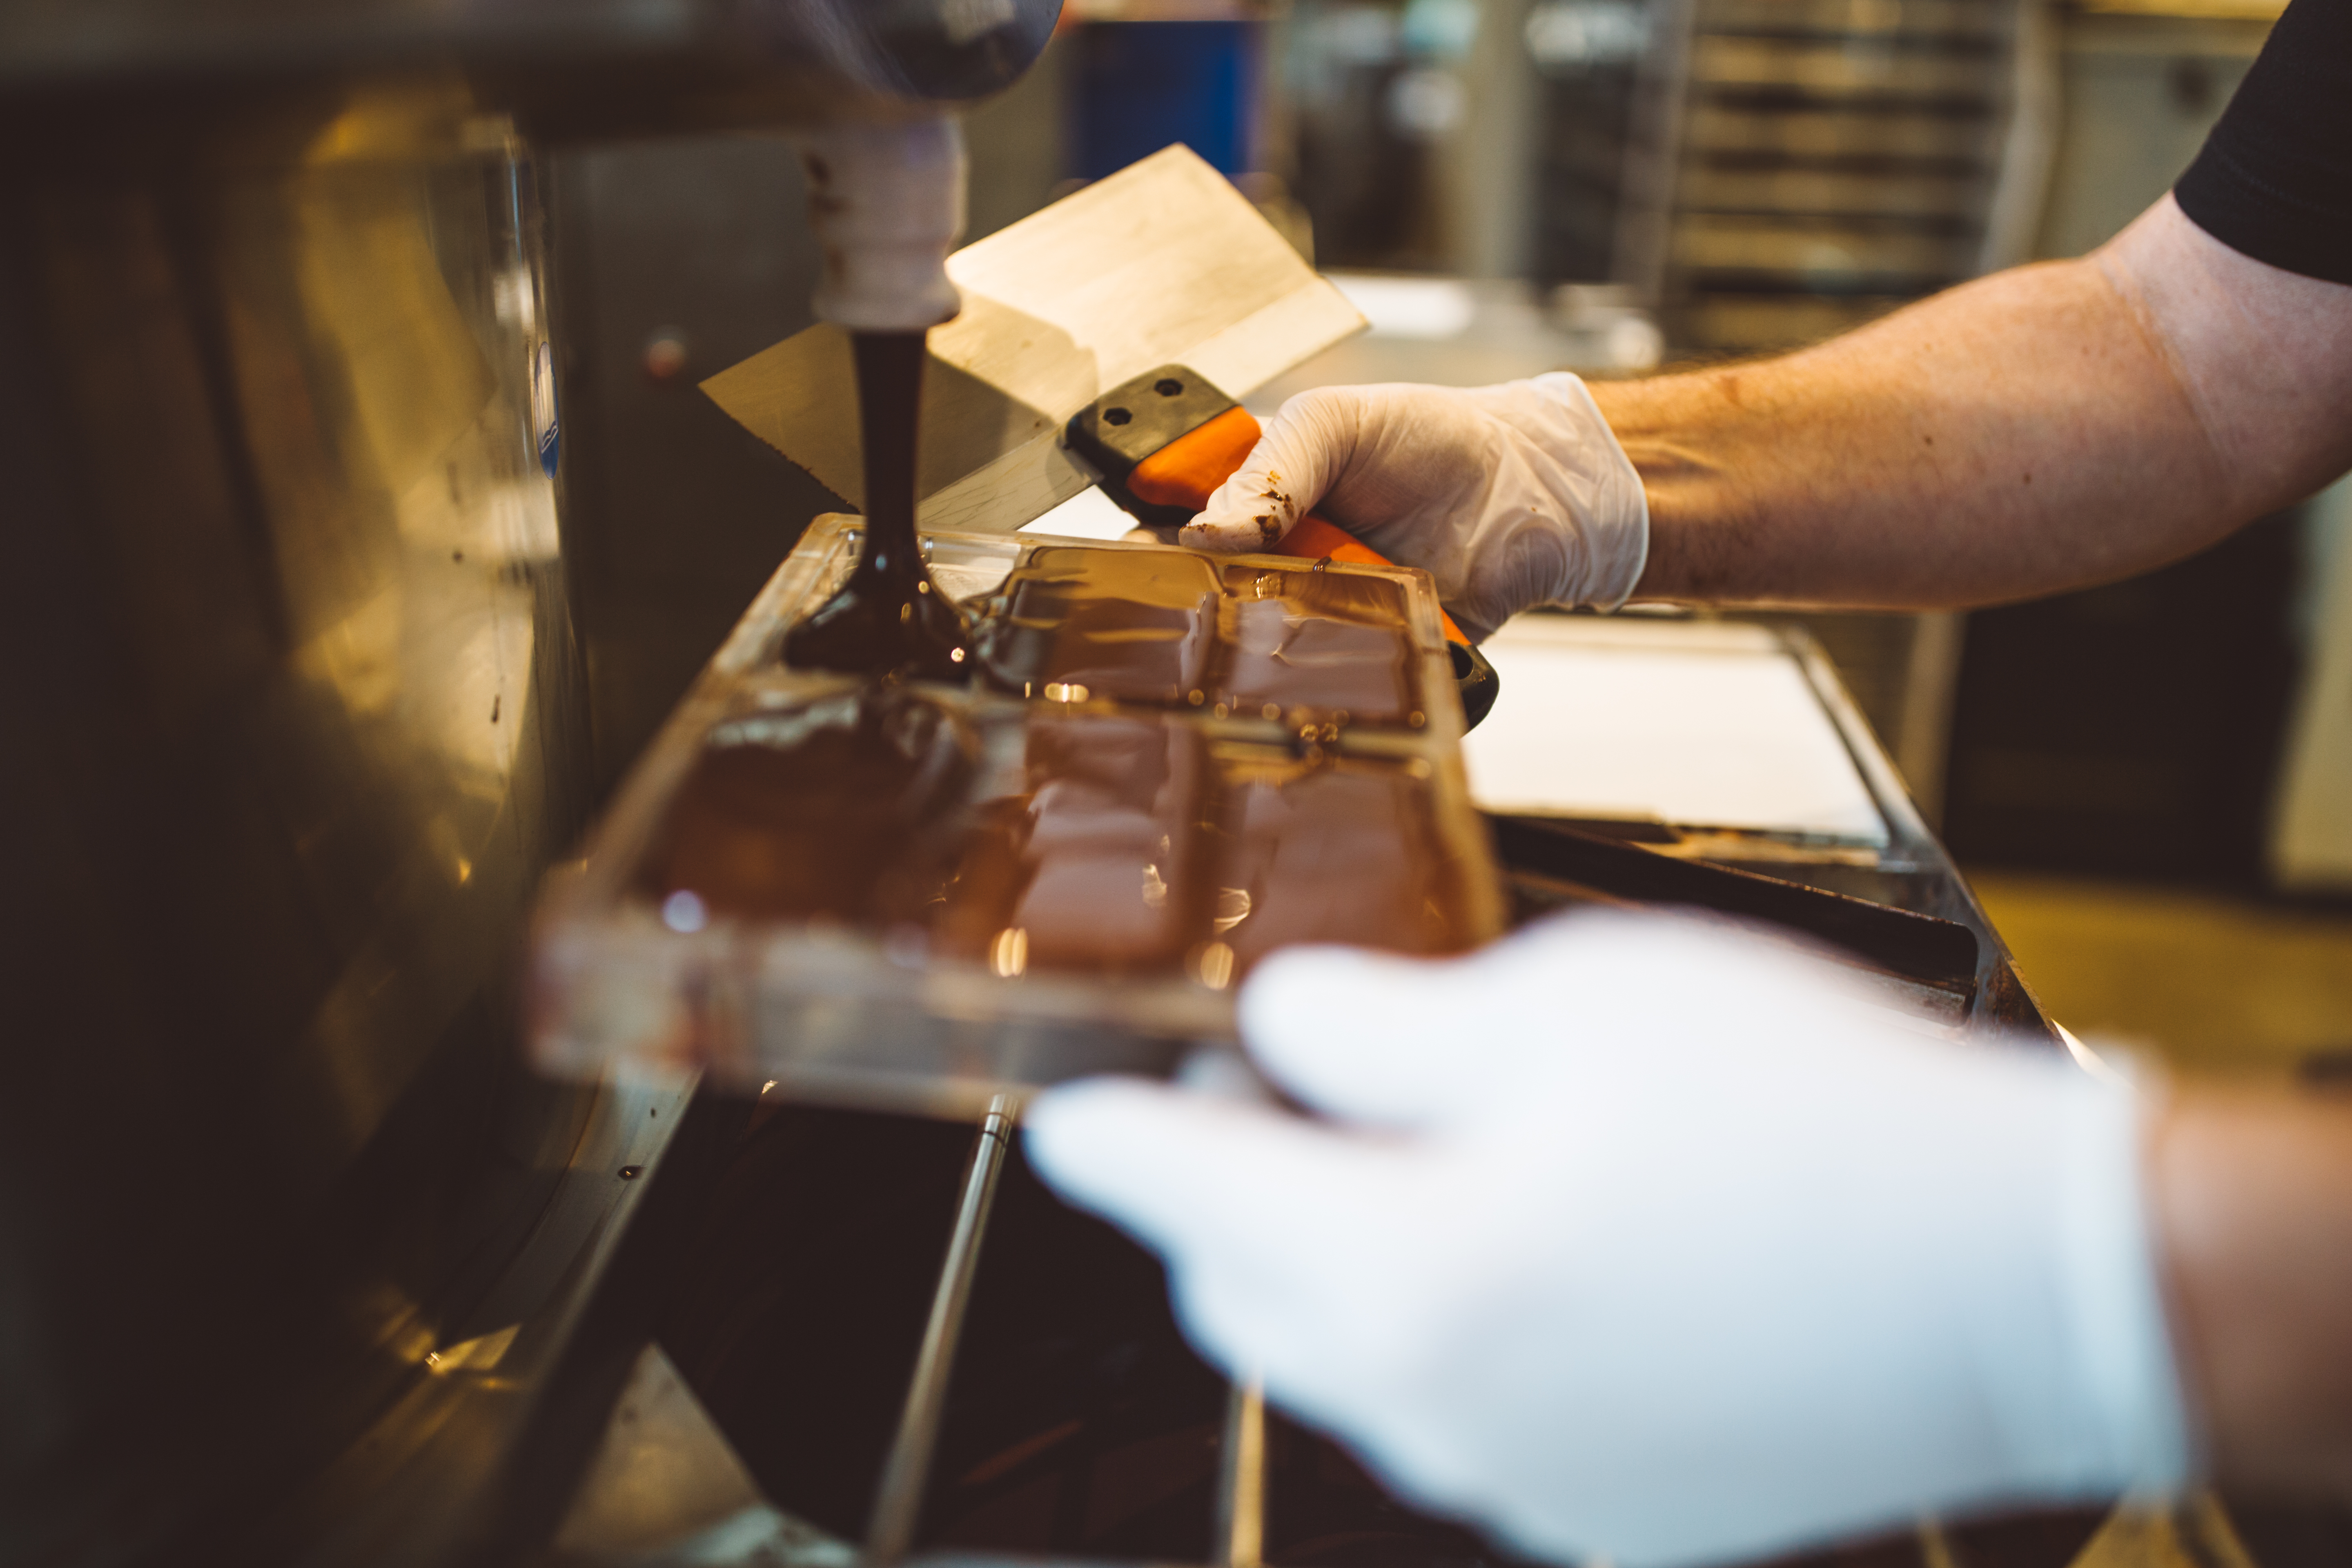 <p>The refined chocolate is then tempered, where it acquires its shiny and snappy characteristics.  Once it has been adequately tempered, the chocolate is finally poured into a desired mold. Vibration is used to get out any air bubbles, and the chocolate is then cooled until it hardens. (Image: Ryan McBoyle / Seattle Refined)</p>